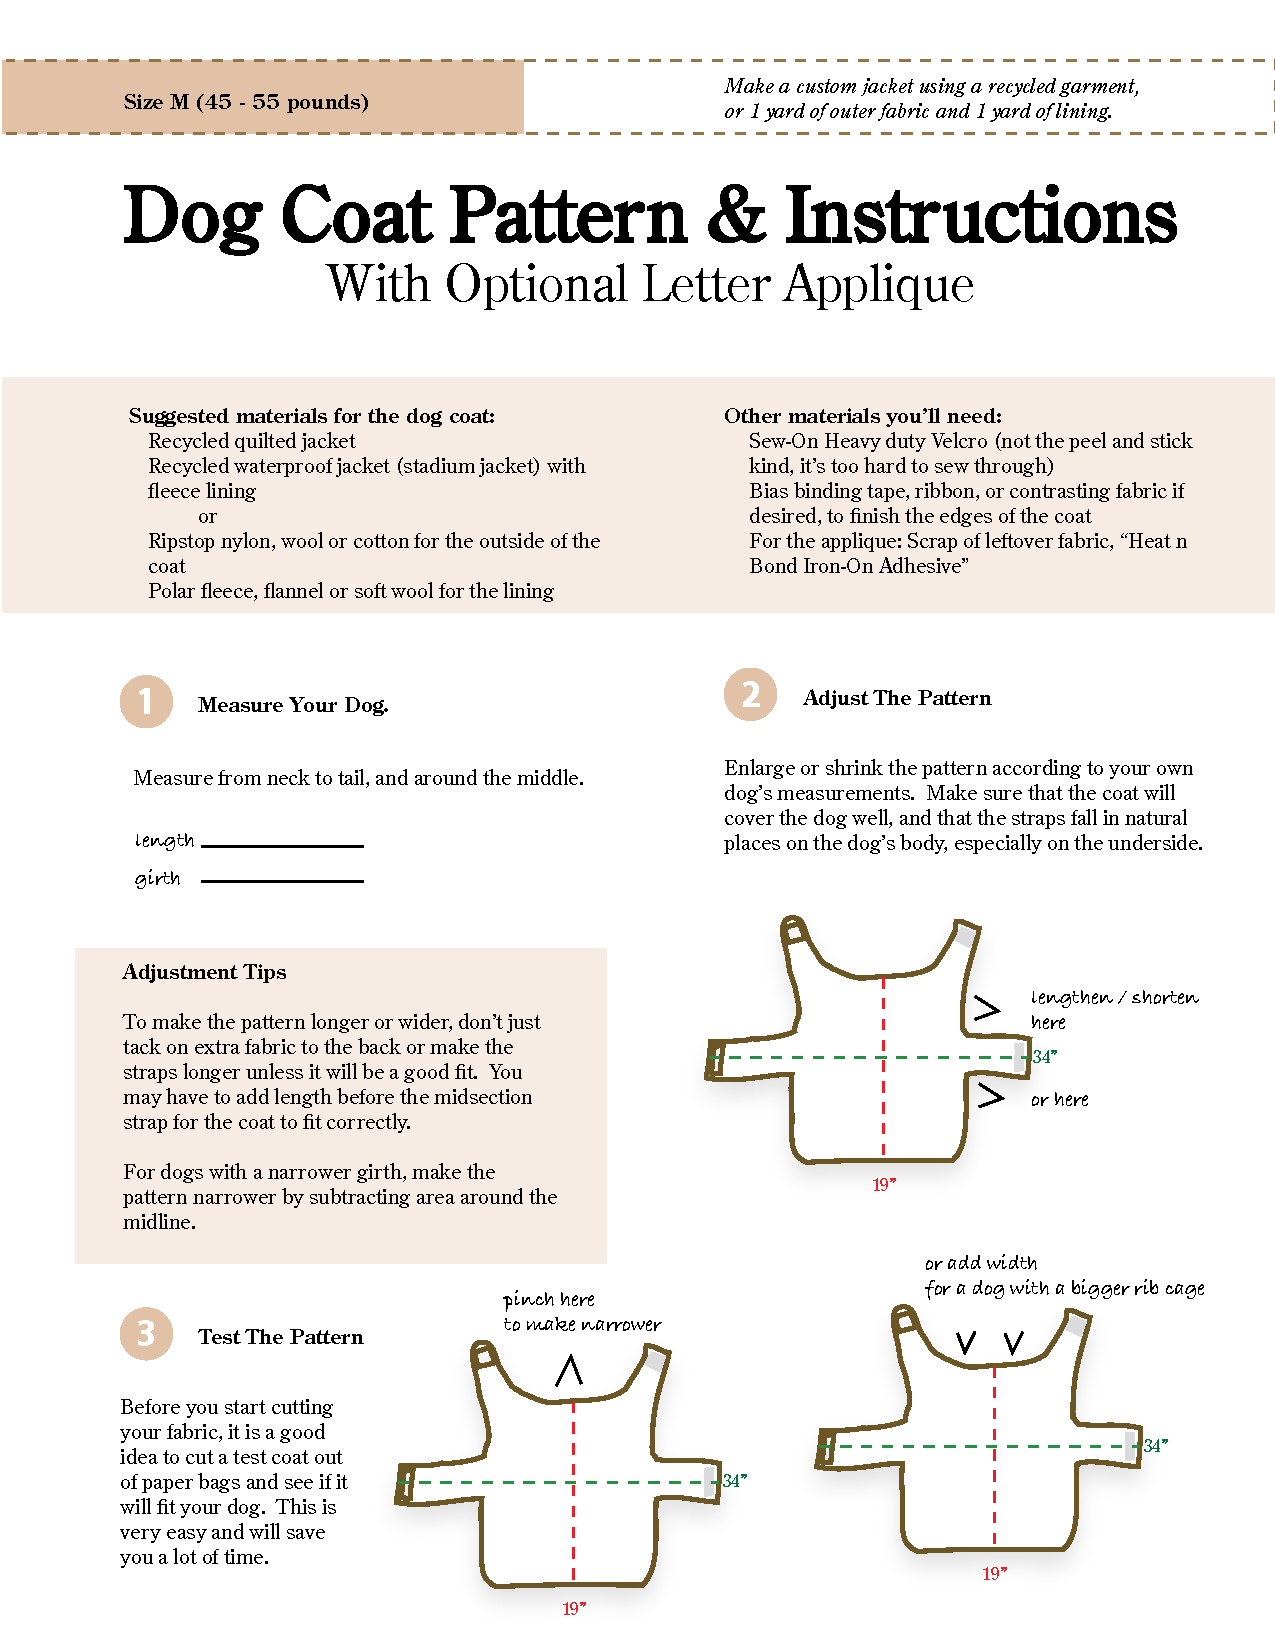 Free Sewing Patterns For Dog Clothes - New Zealand Of Gold Discovery - Free Printable Sewing Patterns For Dog Clothes